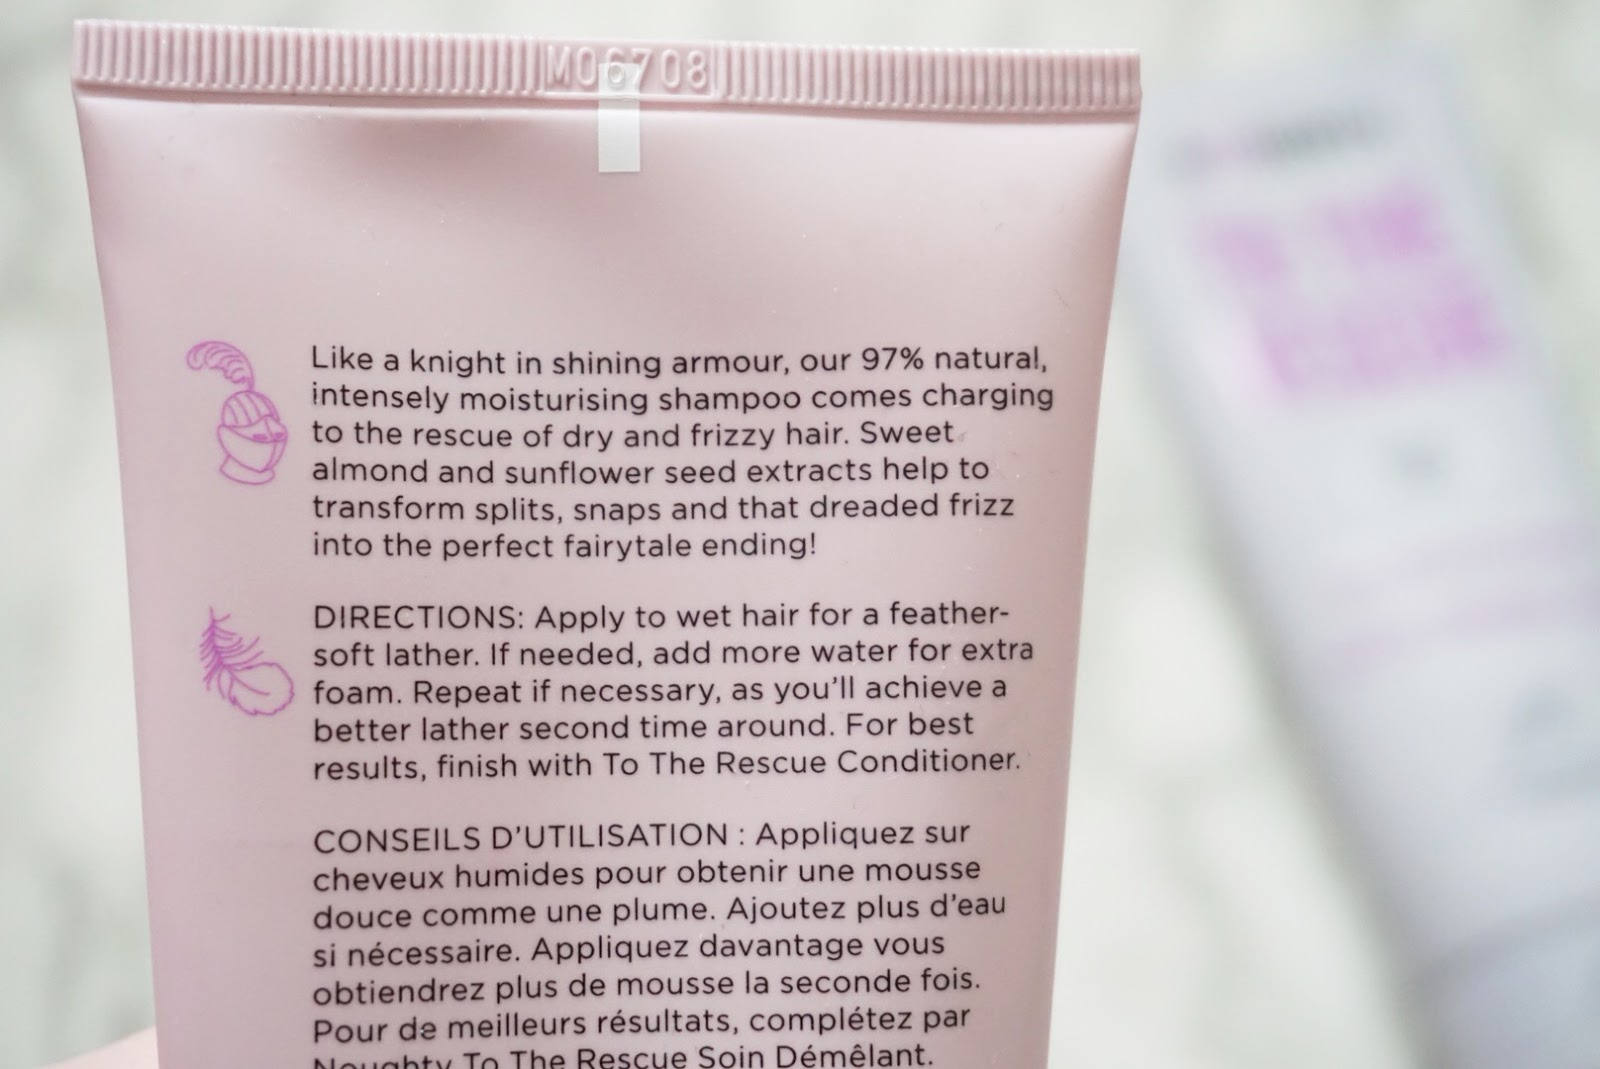 Noughty Hair To The Rescue Shampoo and Conditioner. Ingredients List, Directions and Useful Information.